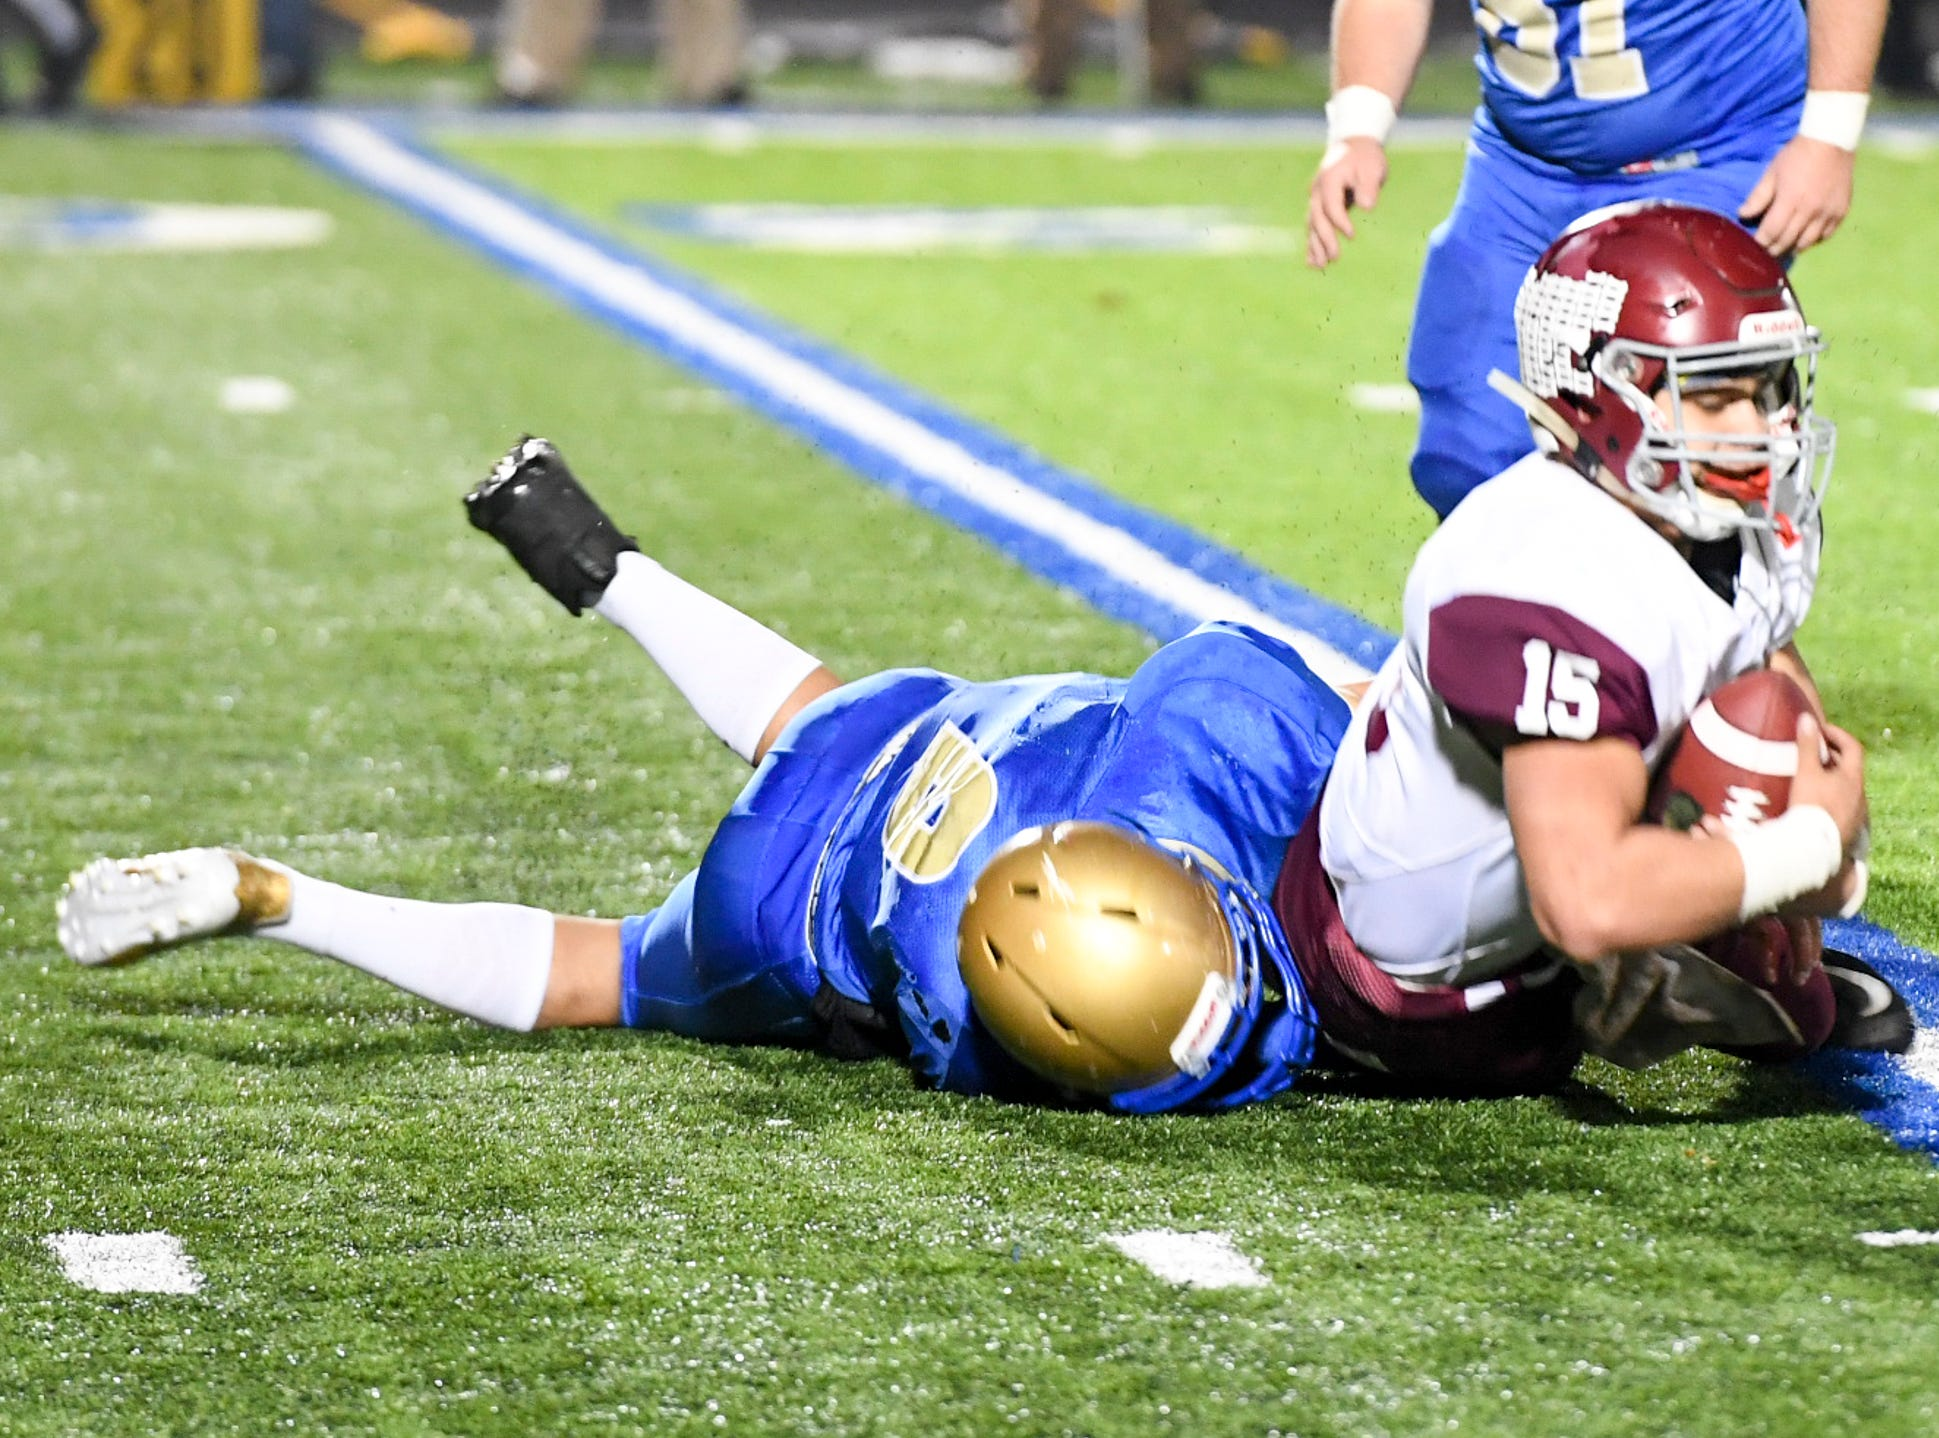 Cornersville's Cameron Whitaker is stopped by Huntingdon's Hunter Ensley during their TSSAA Class A quarter final game, Friday, November 16. Huntingdon fell to Cornersville, 13-7.